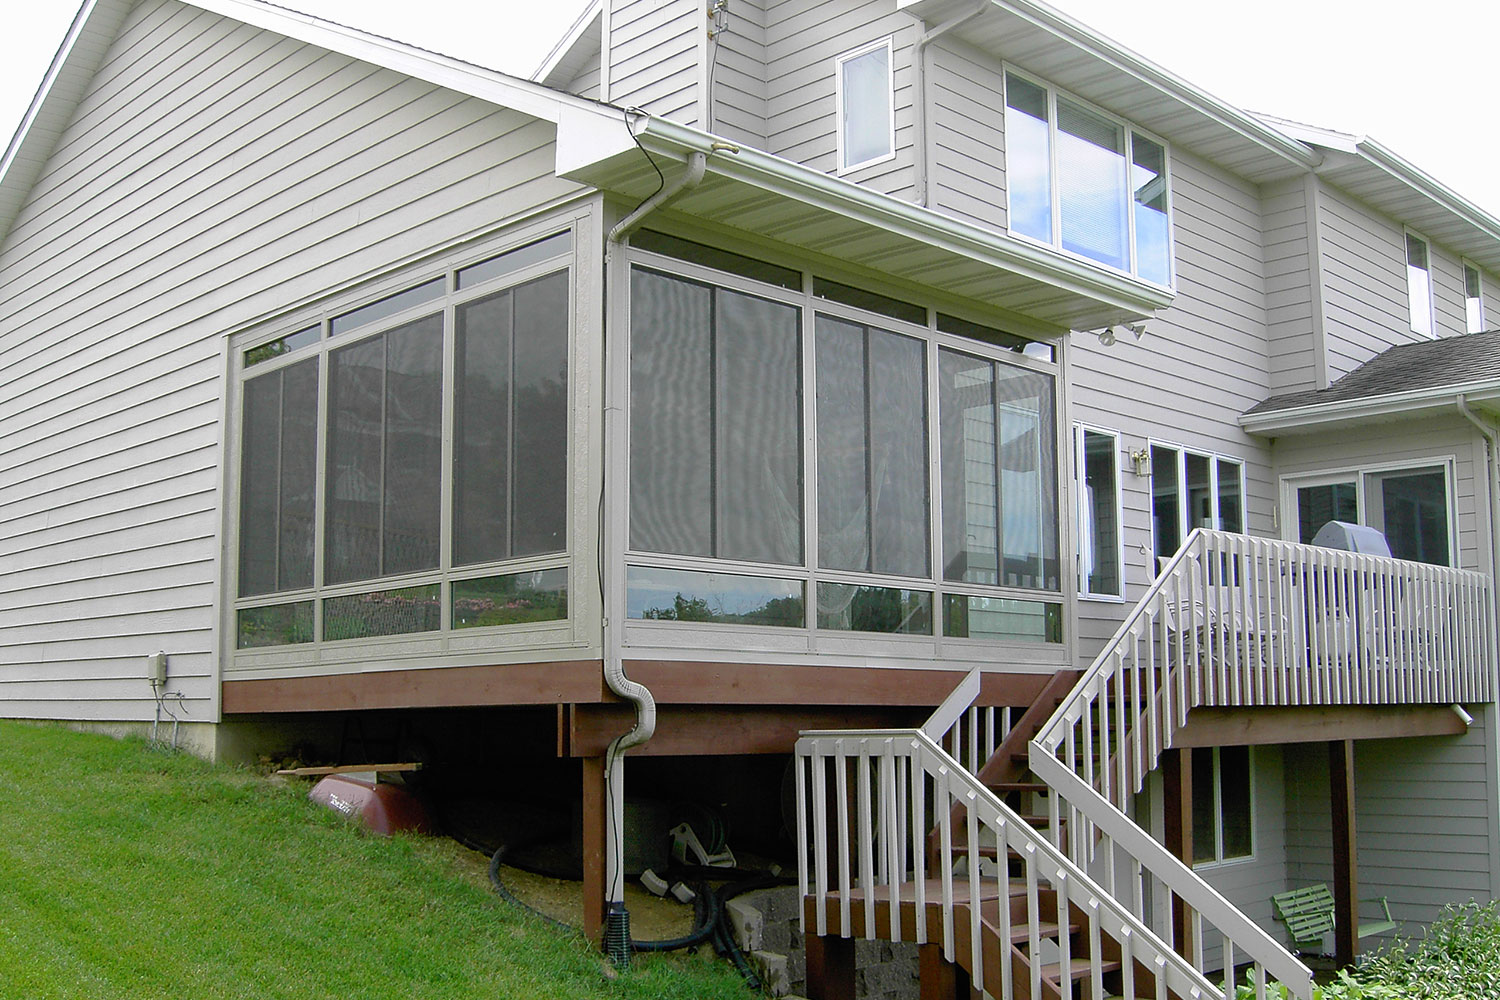 Iowa Sunroom Conversion | Enclosed Screen Room 2 | Home Town Restyling